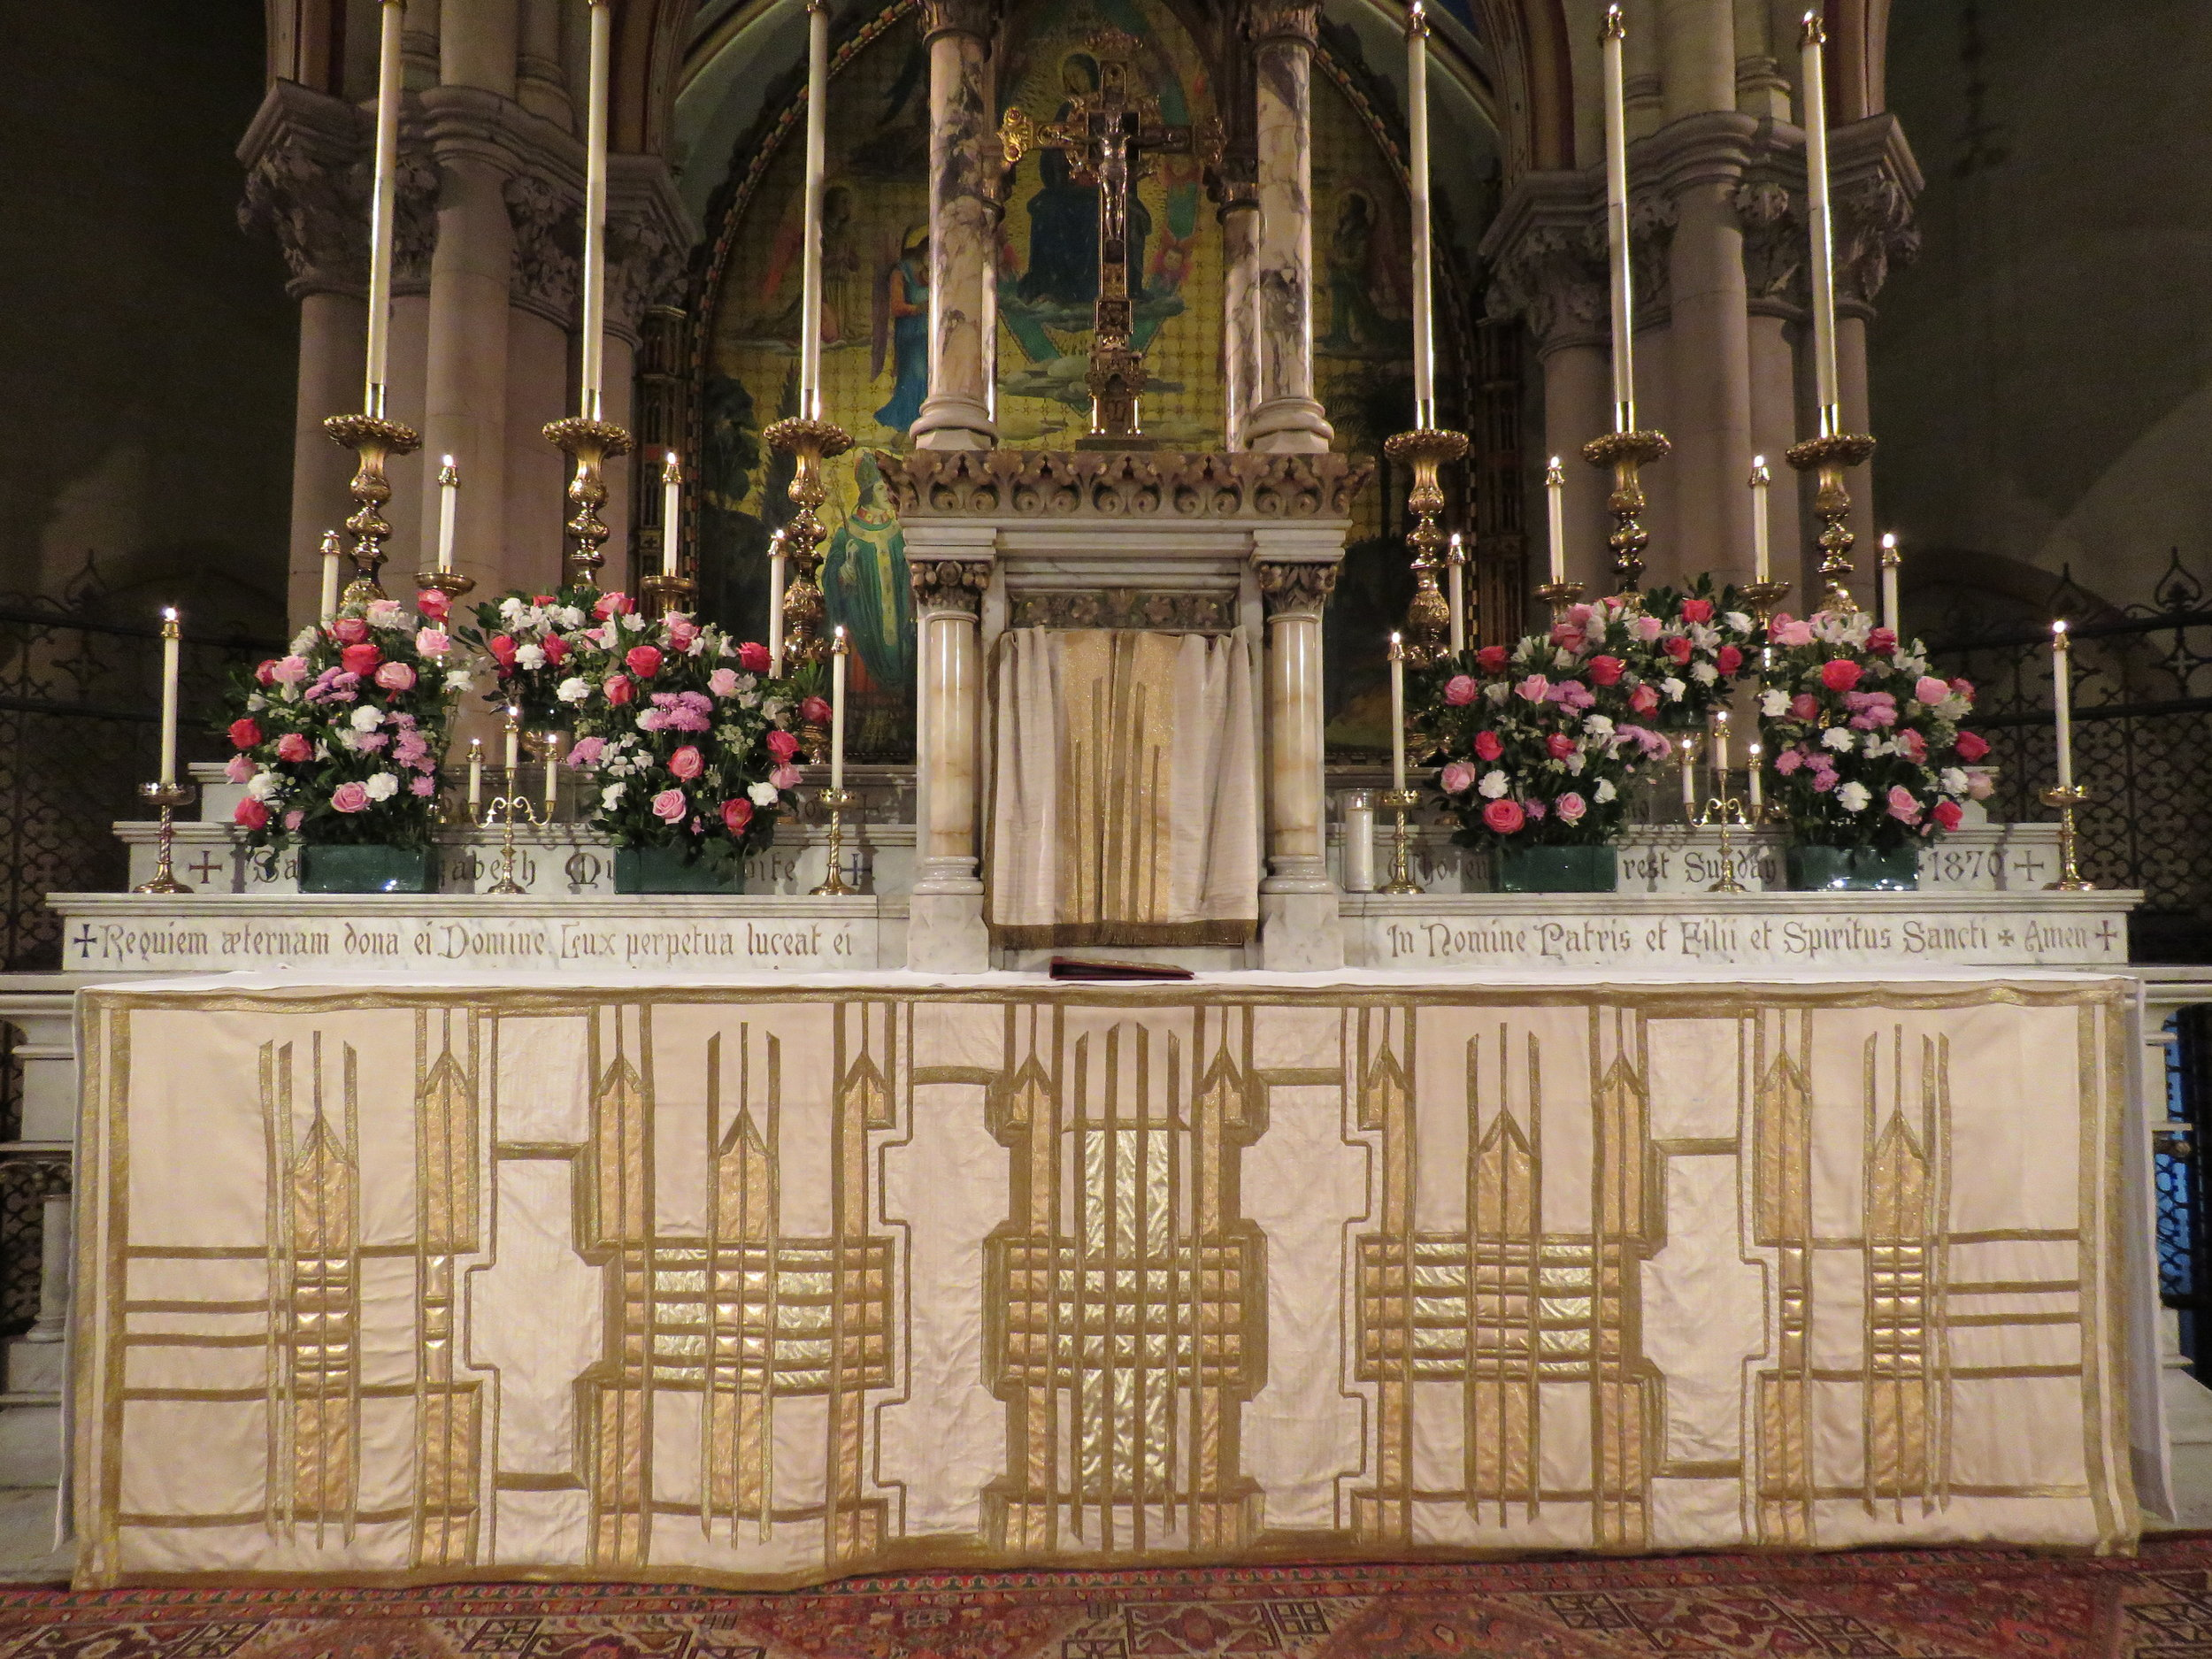 The High Altar, Trinity Sunday, June 16, 2019  Photo: Damien Joseph SSF